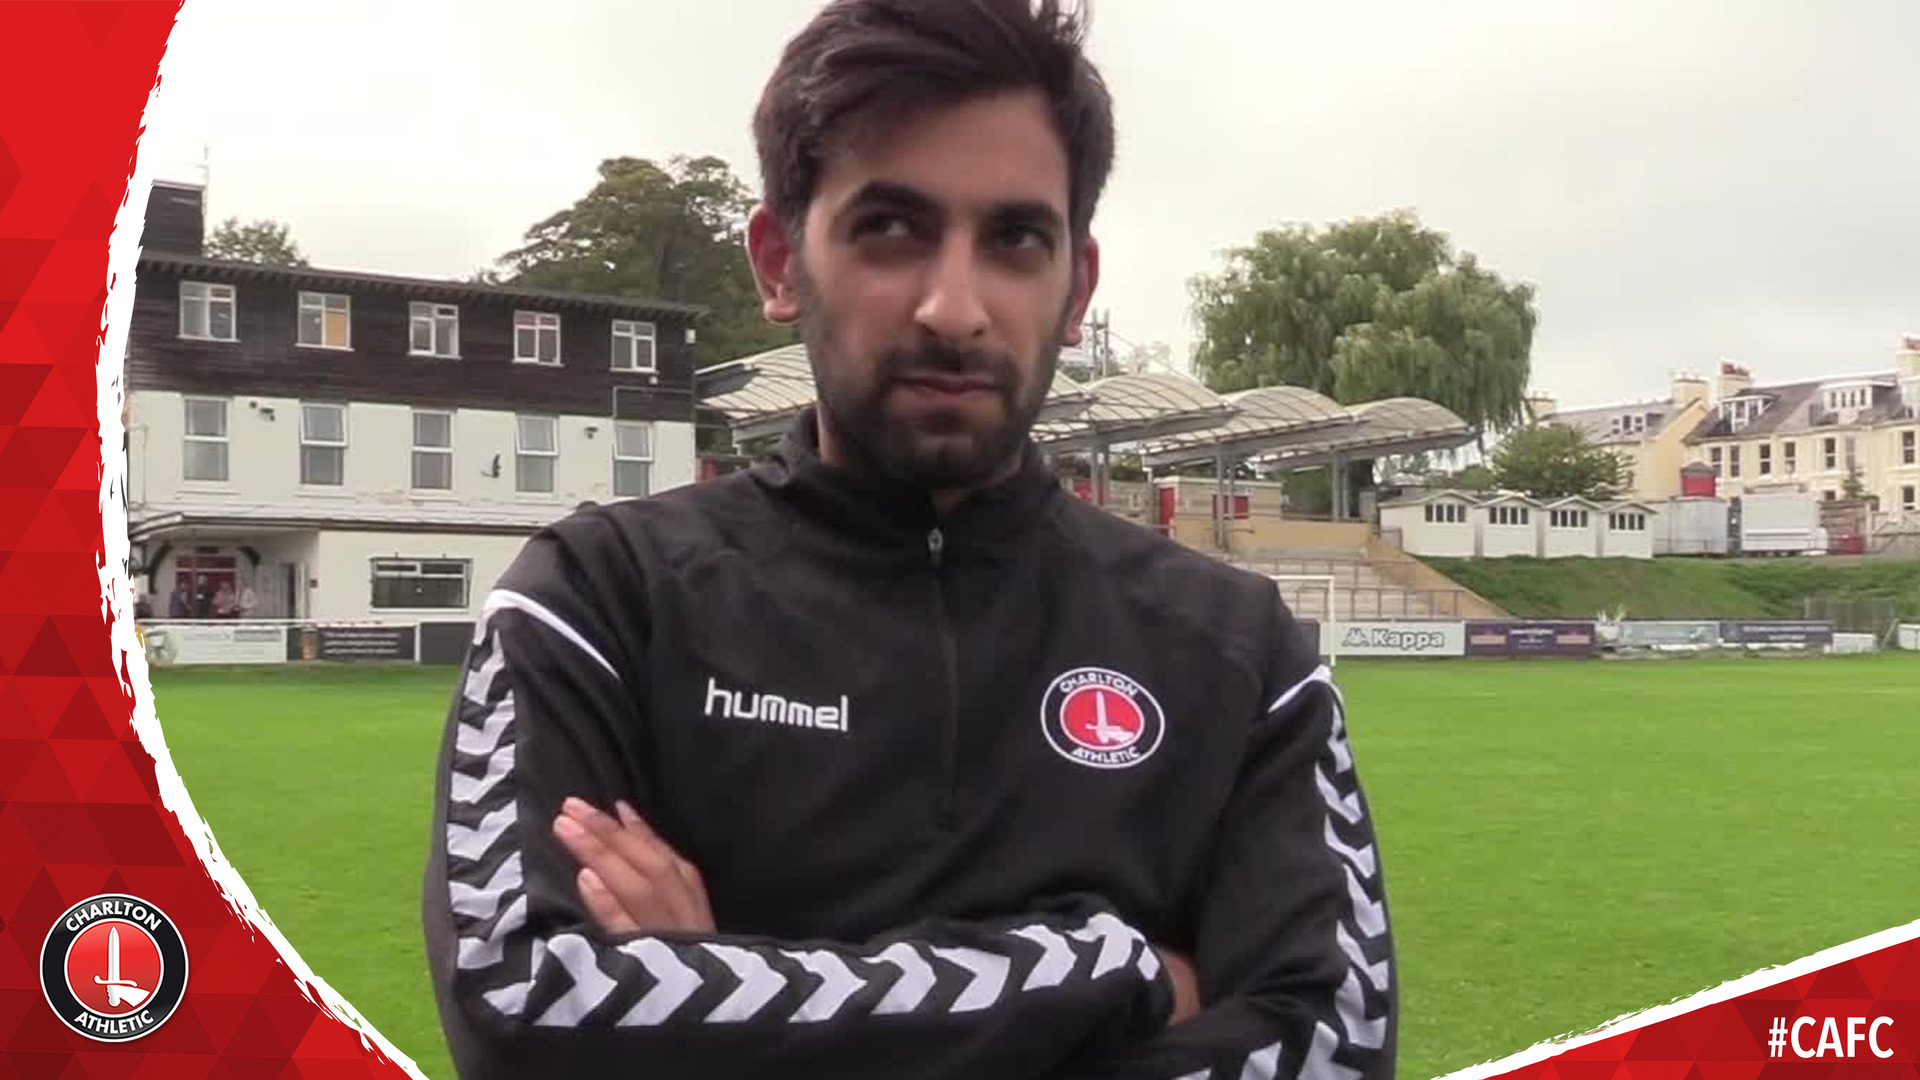 REACTION | Riteesh Mishra disapointed with Lewes result